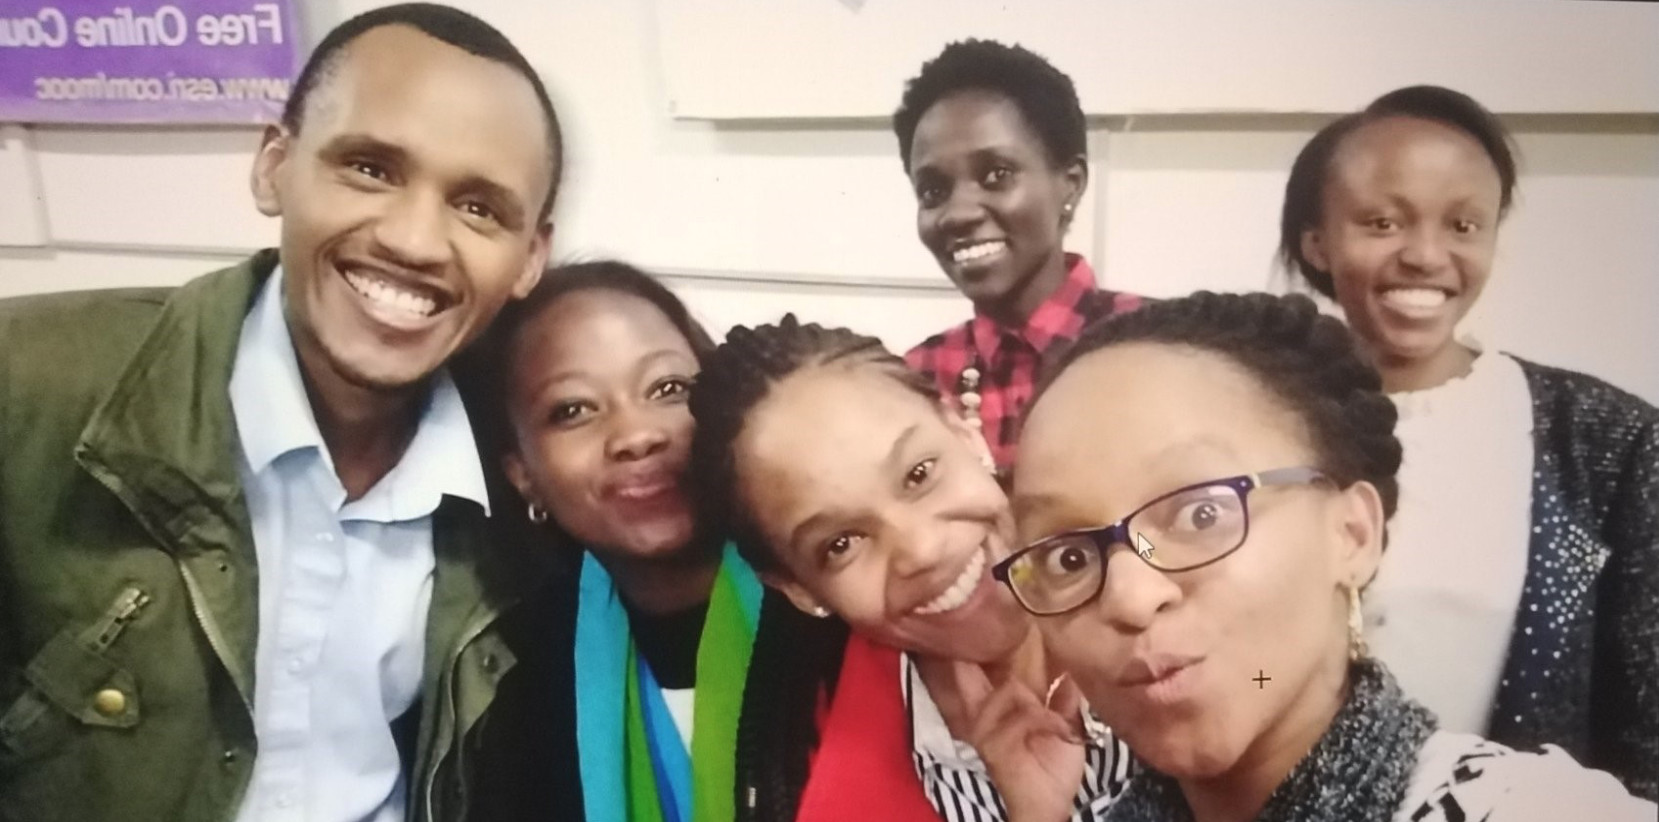 This picture was taken after our inaugural student event on post graduate studies. From Left  Alex Asige-Kenyatta University, Caroline Akoth-WiGISKe, Sophia Njeri-WiGISKe, Nombuyiselo Murage-WiGISKe.  At the back - from left - Yariwo Kitiyo-WiGISKe and Annrose Mwangi- University of Nairobi